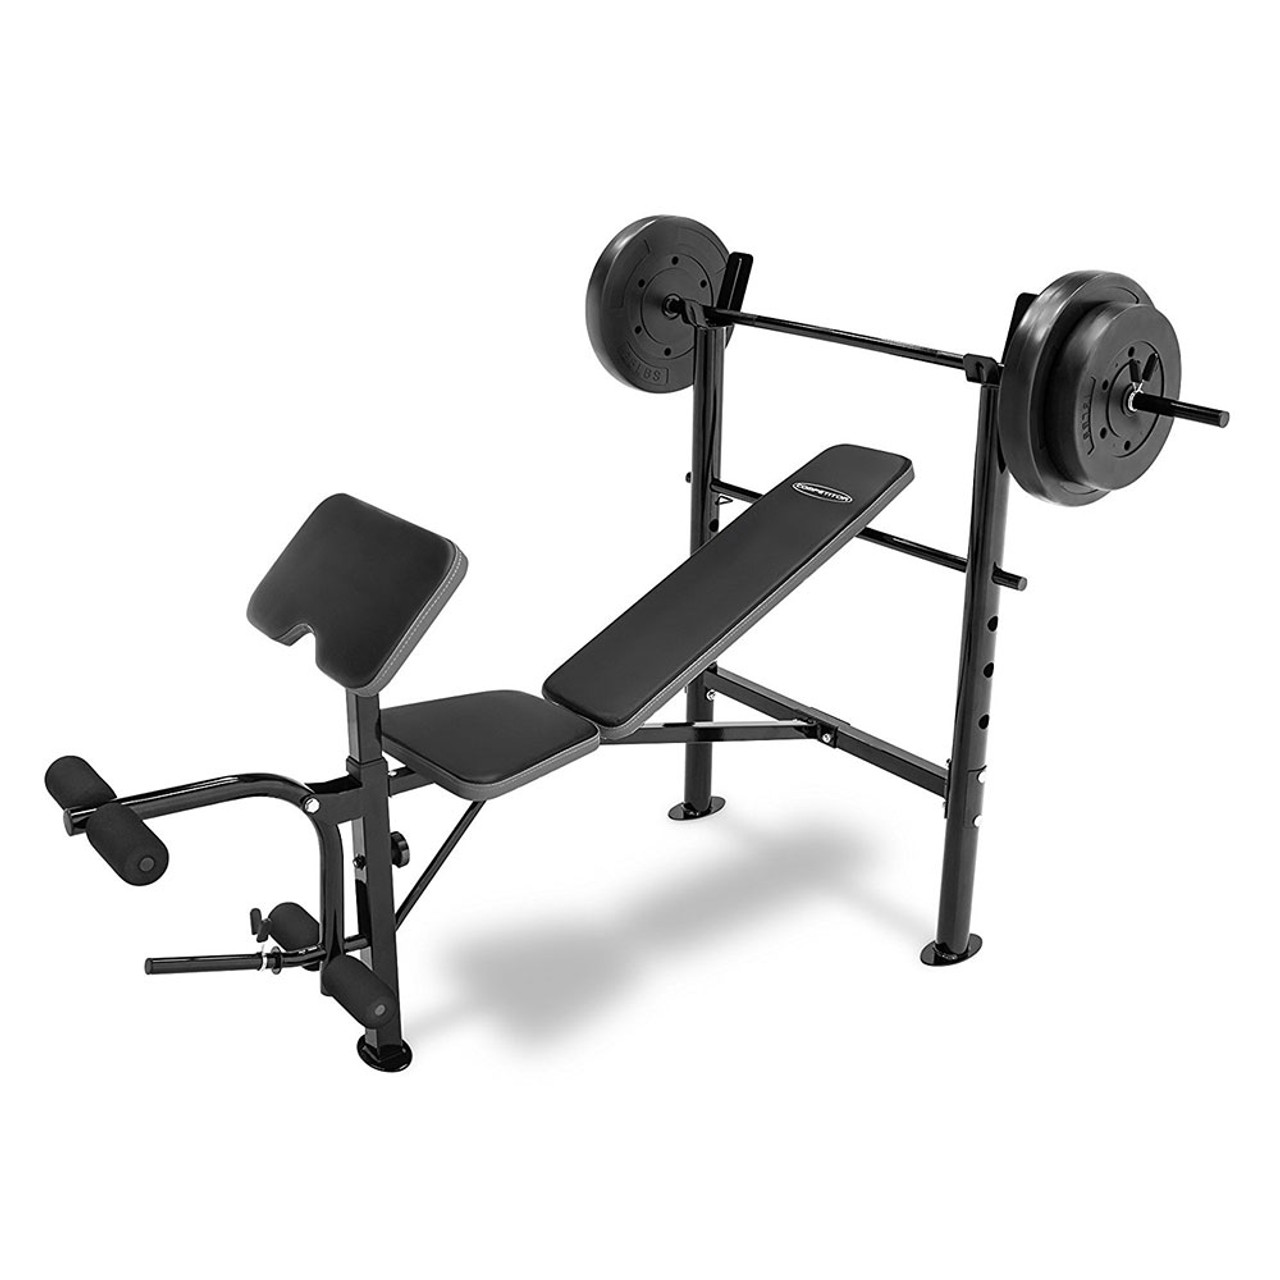 the combo bench with 80 lbs weight set cb20110 by competitor is a complete